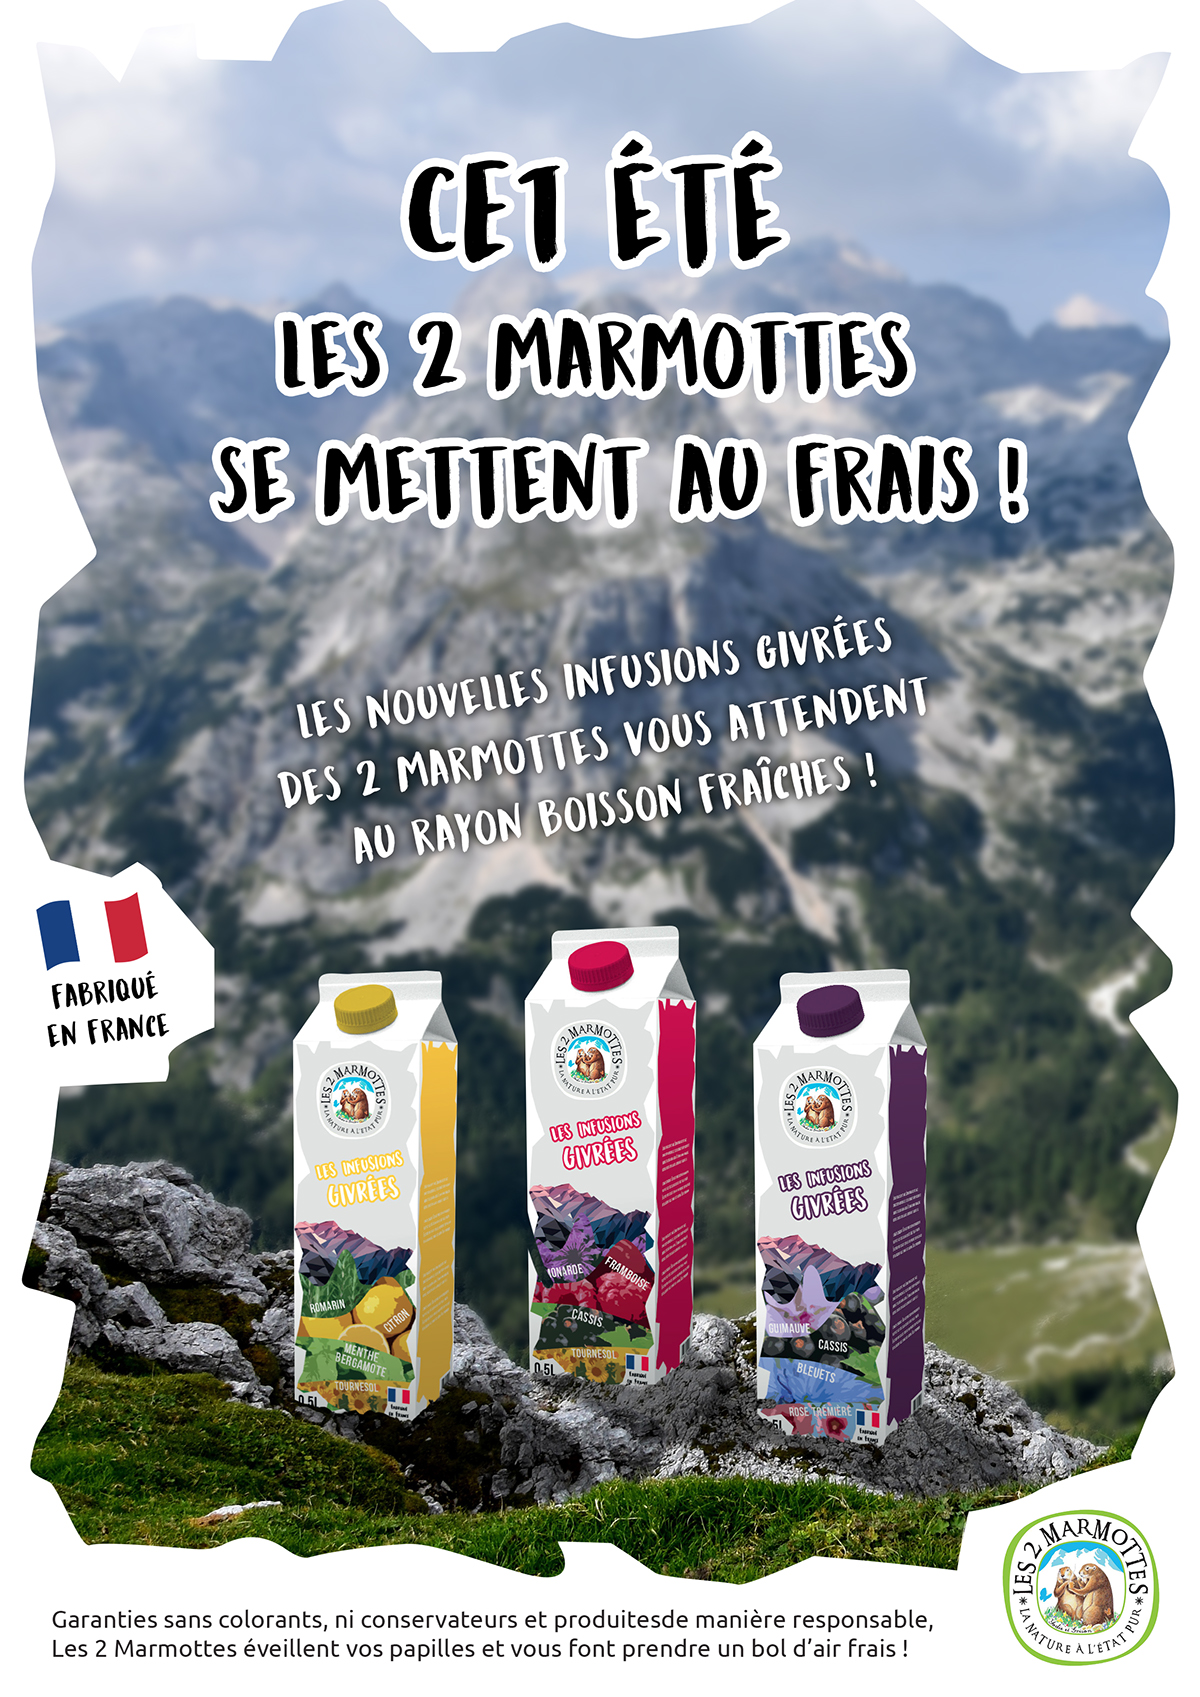 les 2 marmottes infusions froides Ecoles ARIES guillaume breant the